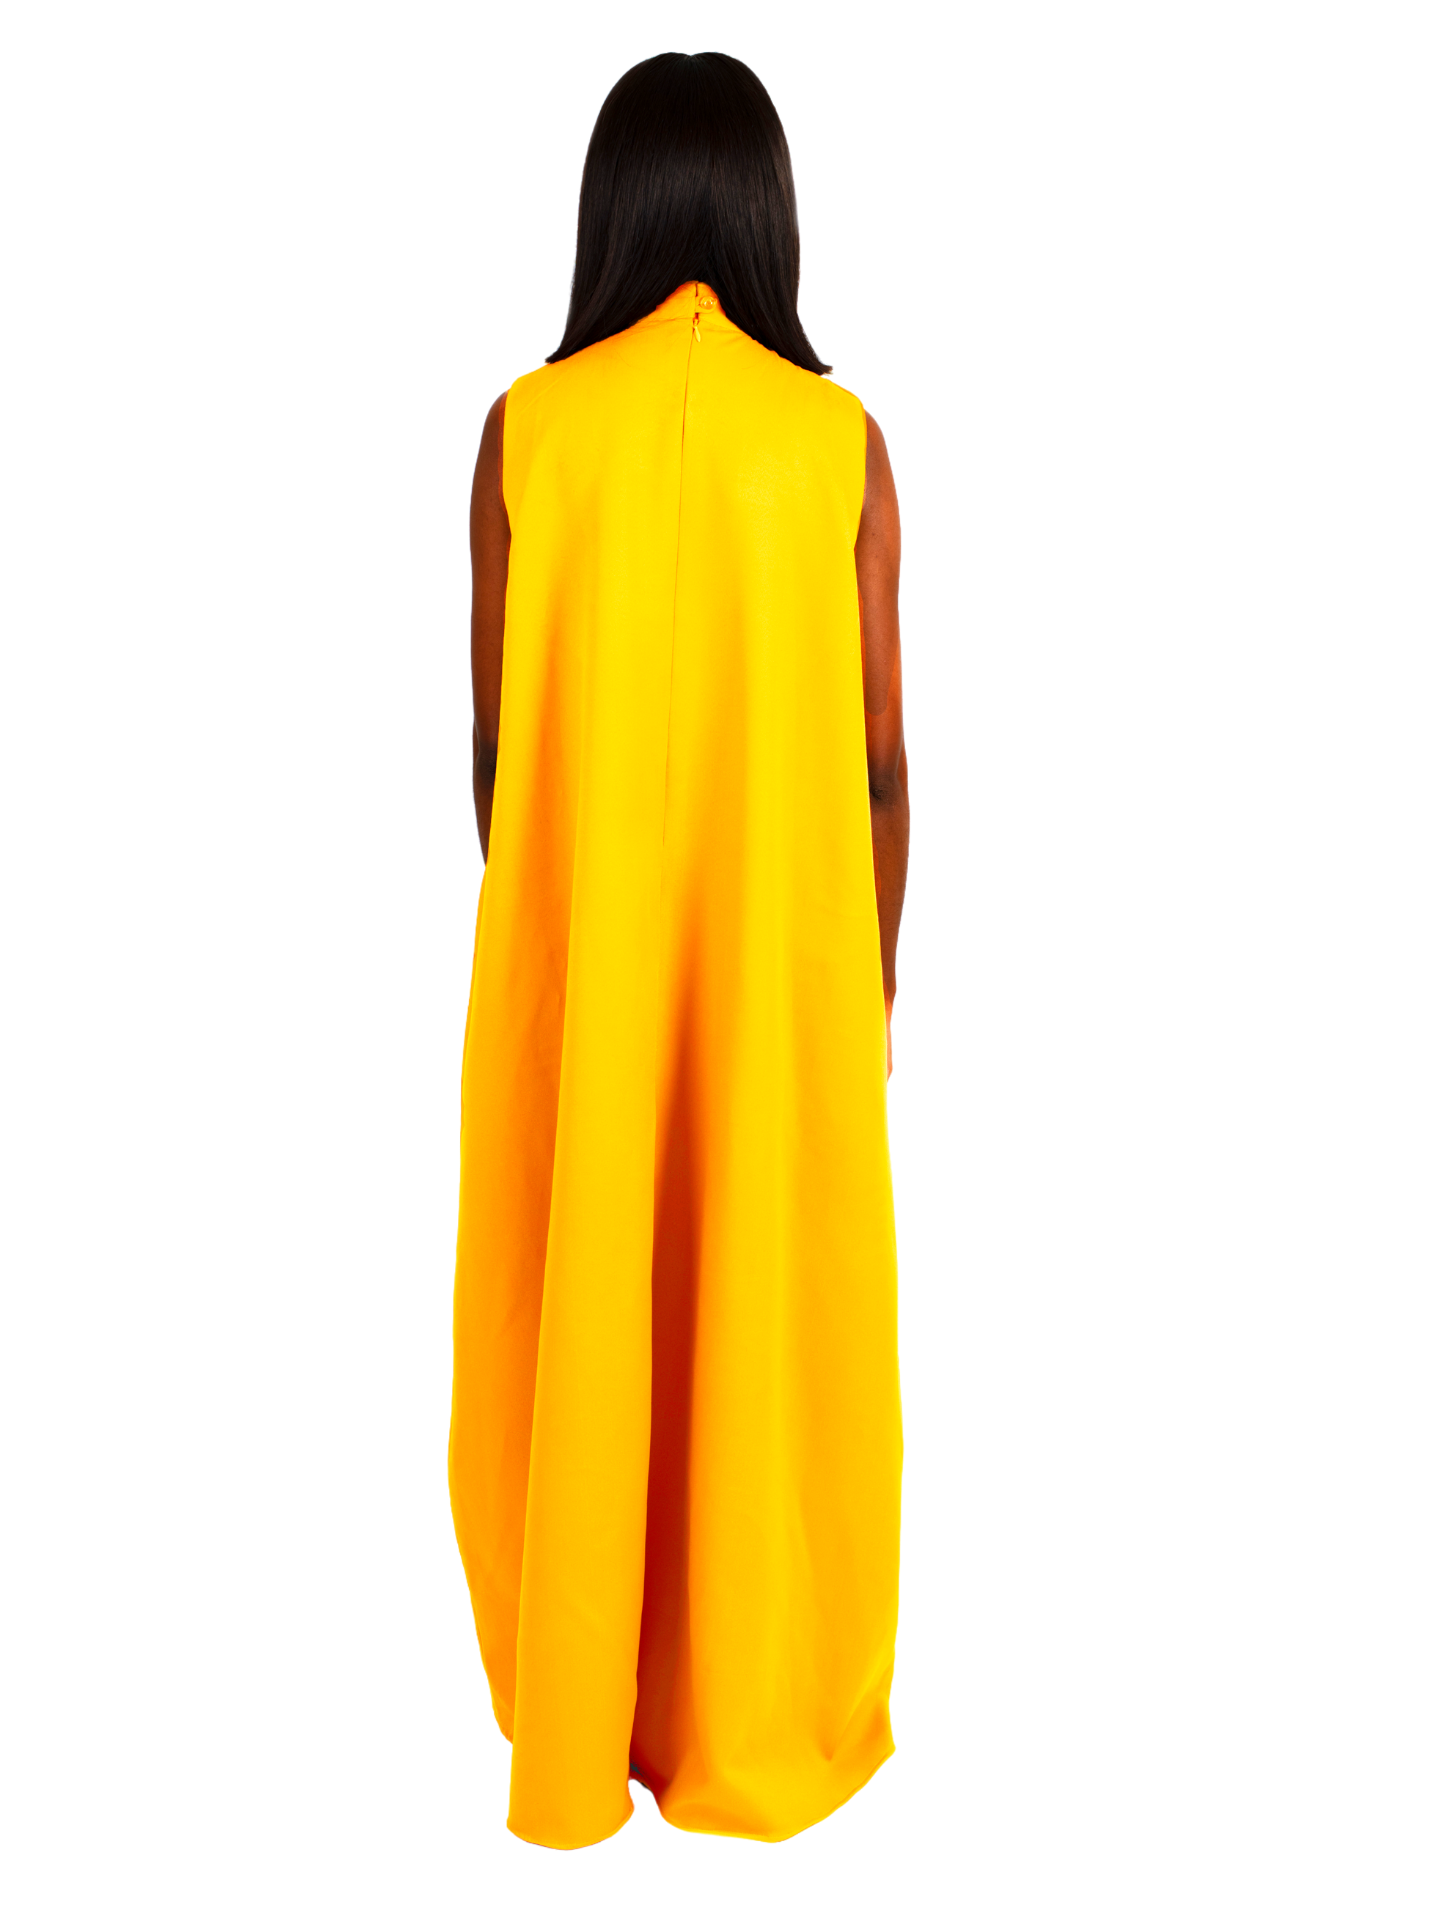 Zen Dress in Yellow